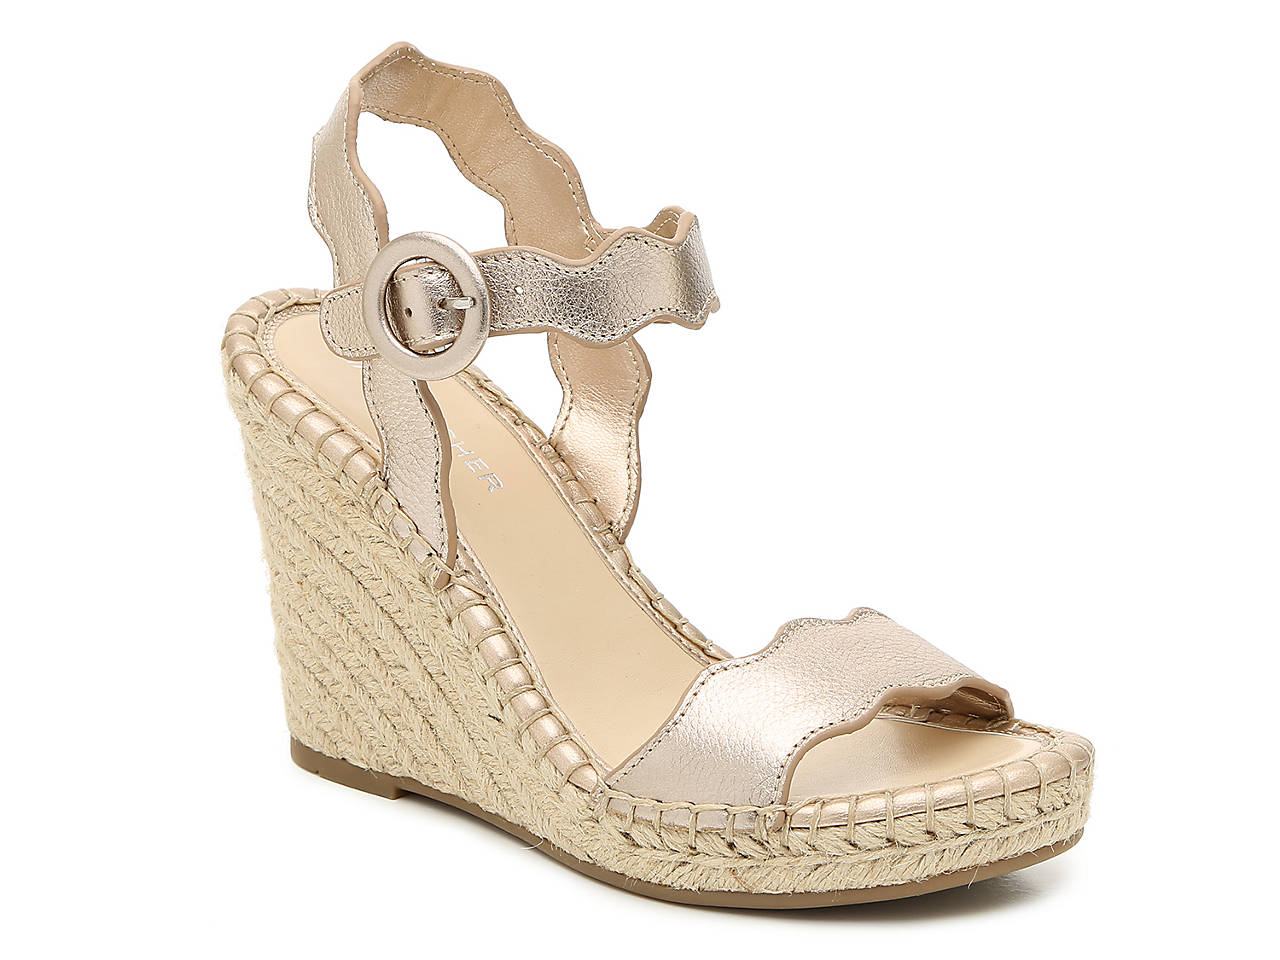 4d89473f8542 Marc Fisher Kai Espadrille Wedge Sandal Women s Shoes